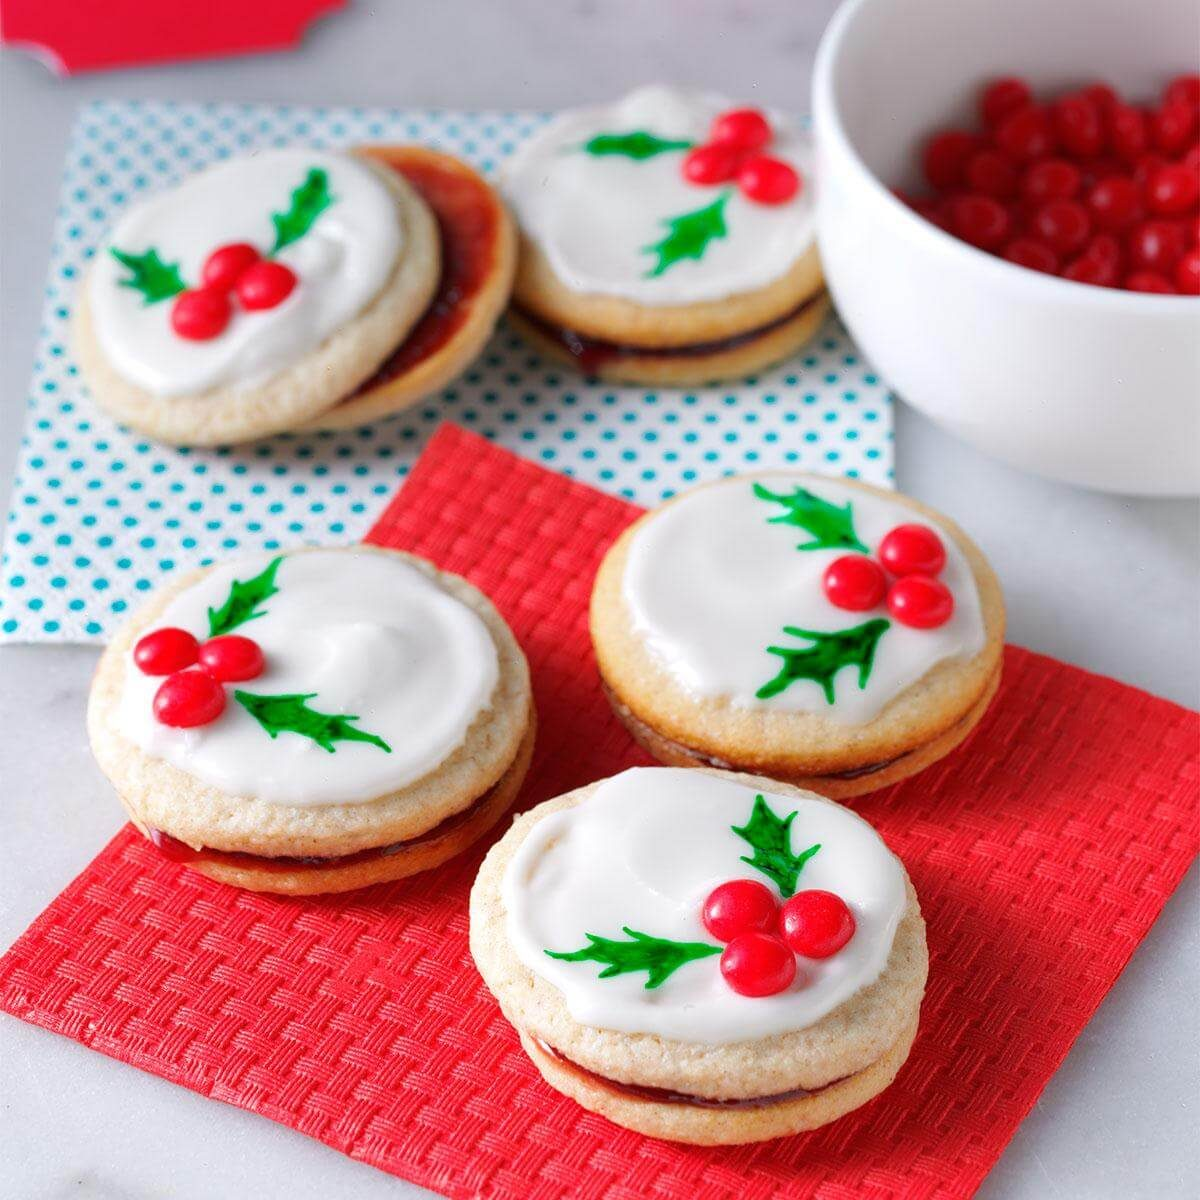 30 Plus Festive Christmas Cookie Recipes: Holly Berry Cookies Recipe